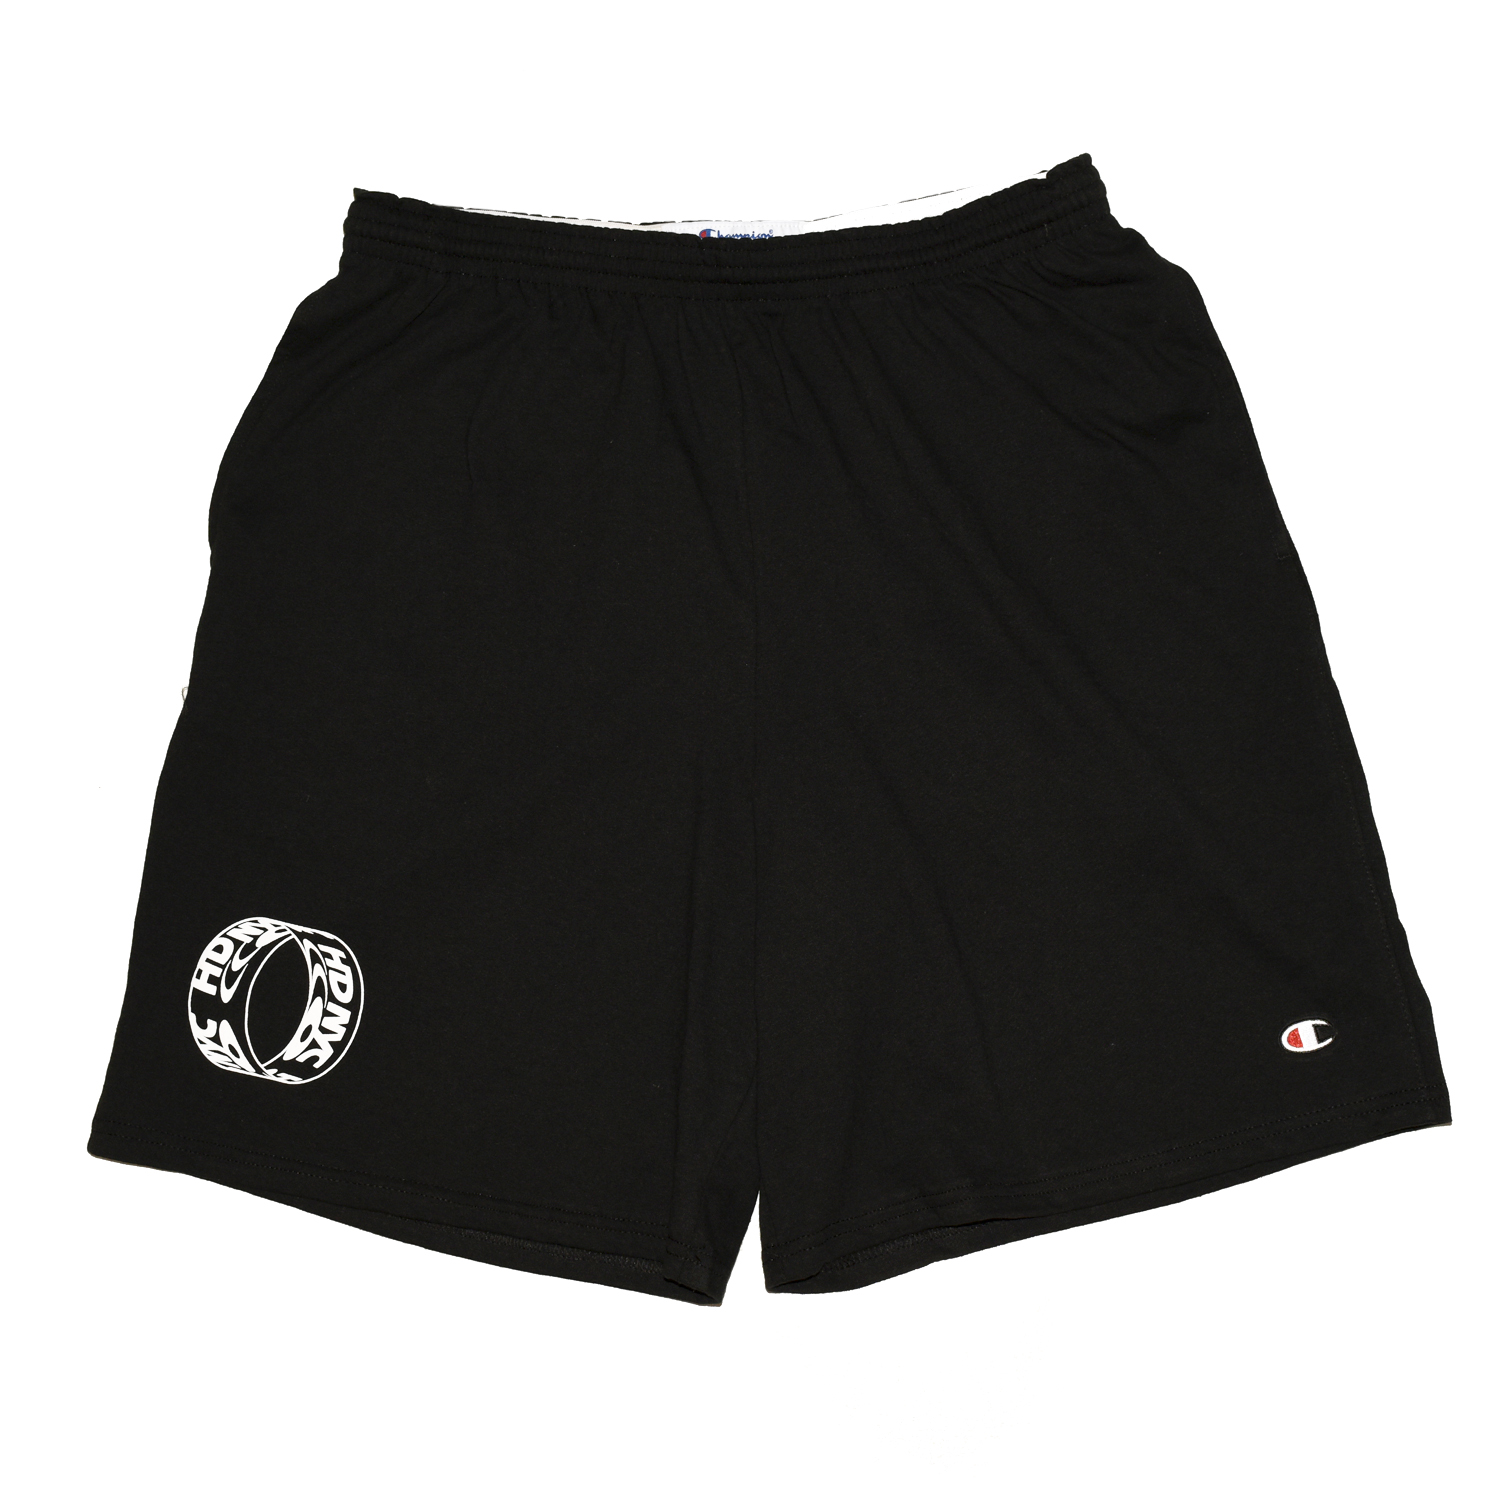 INFINITE LOOP ---- HDNYC JERSEY SHORTS